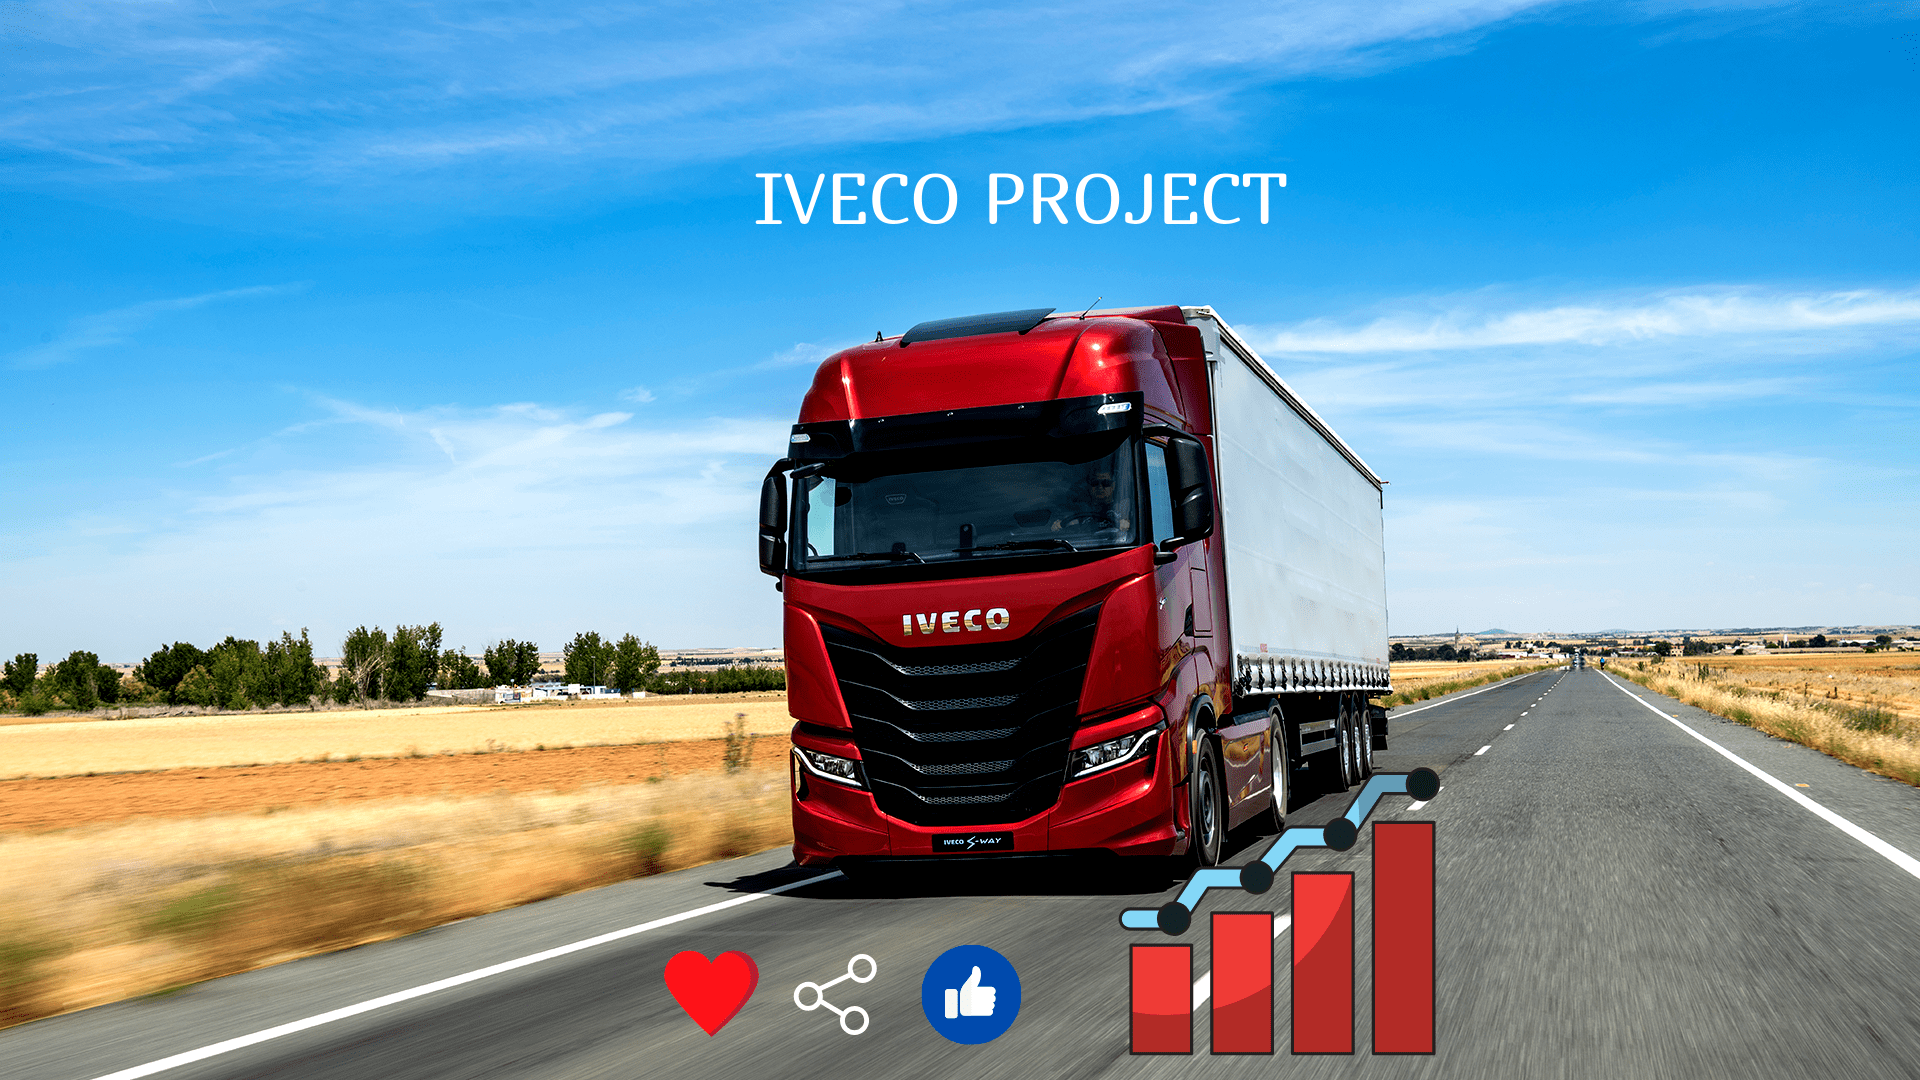 IVECO PROJECT